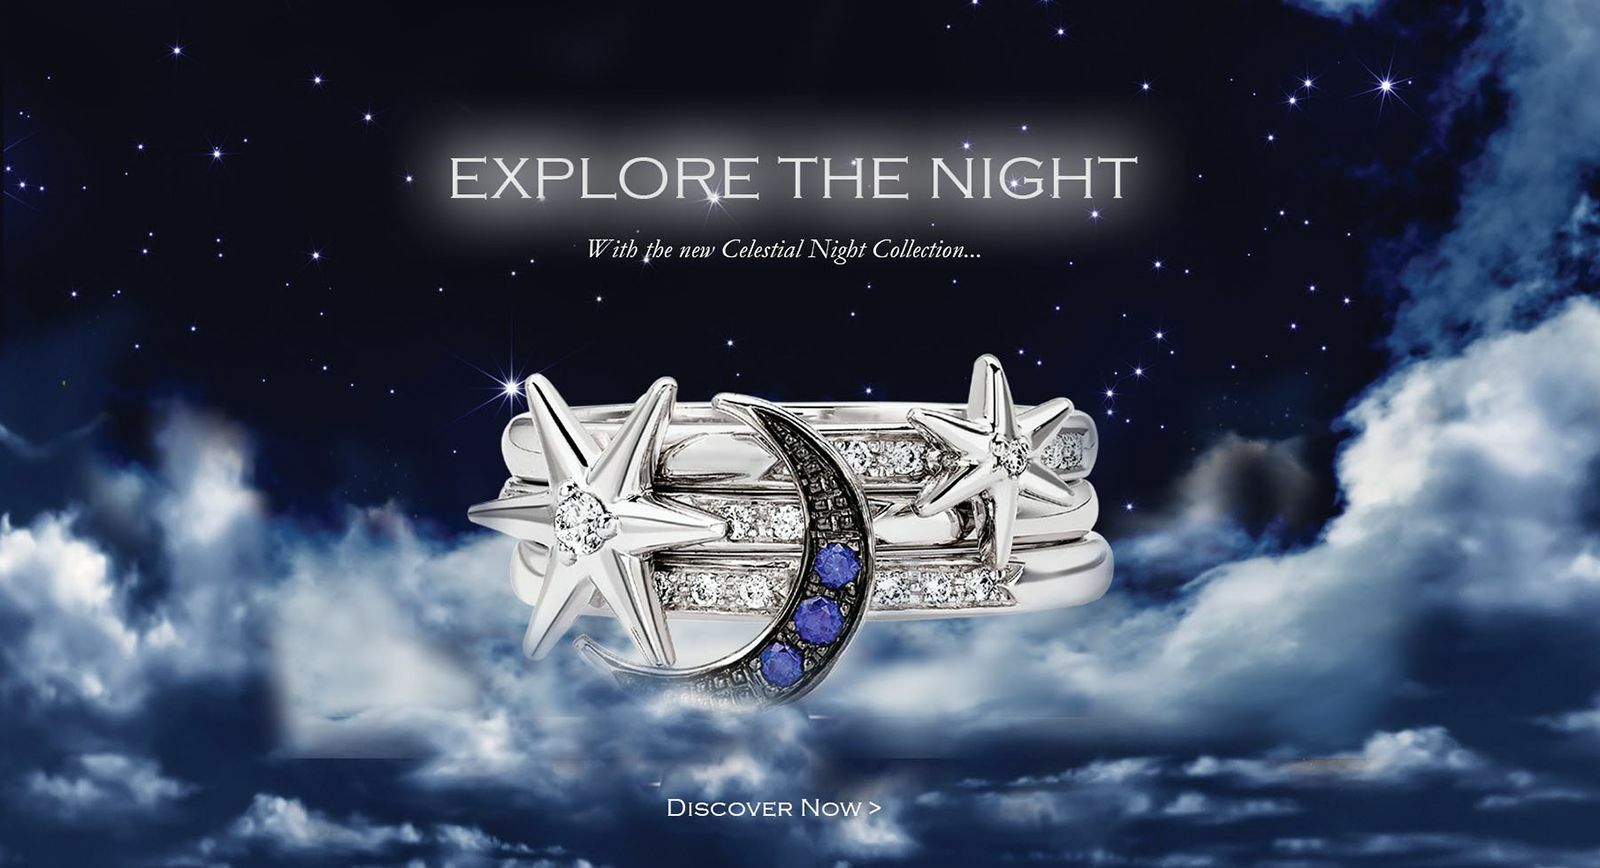 New Celestial Night Collection by Theo Fennell